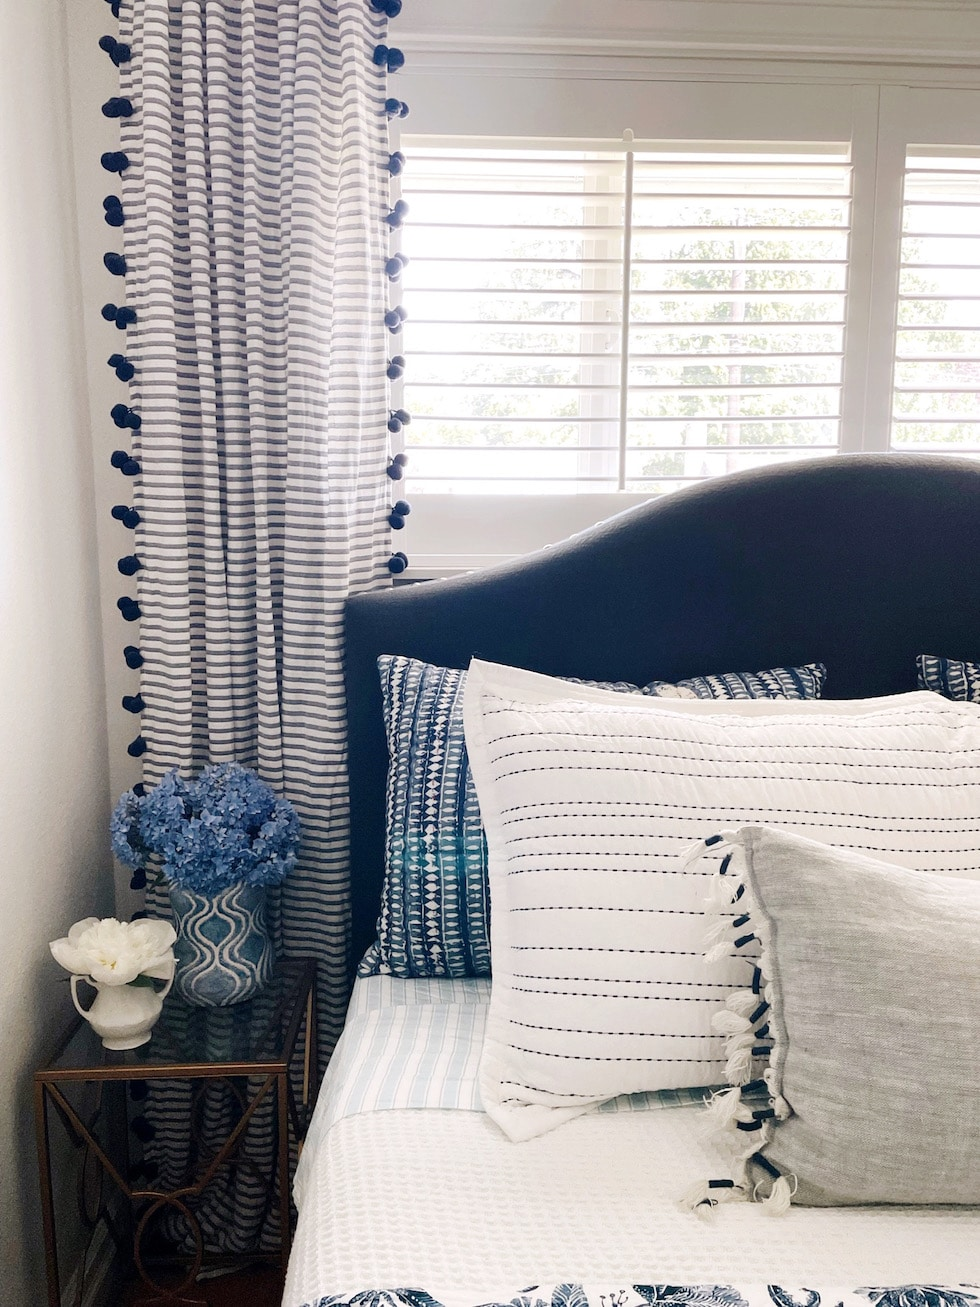 Summer Quilt + Pattern Mixing Tips